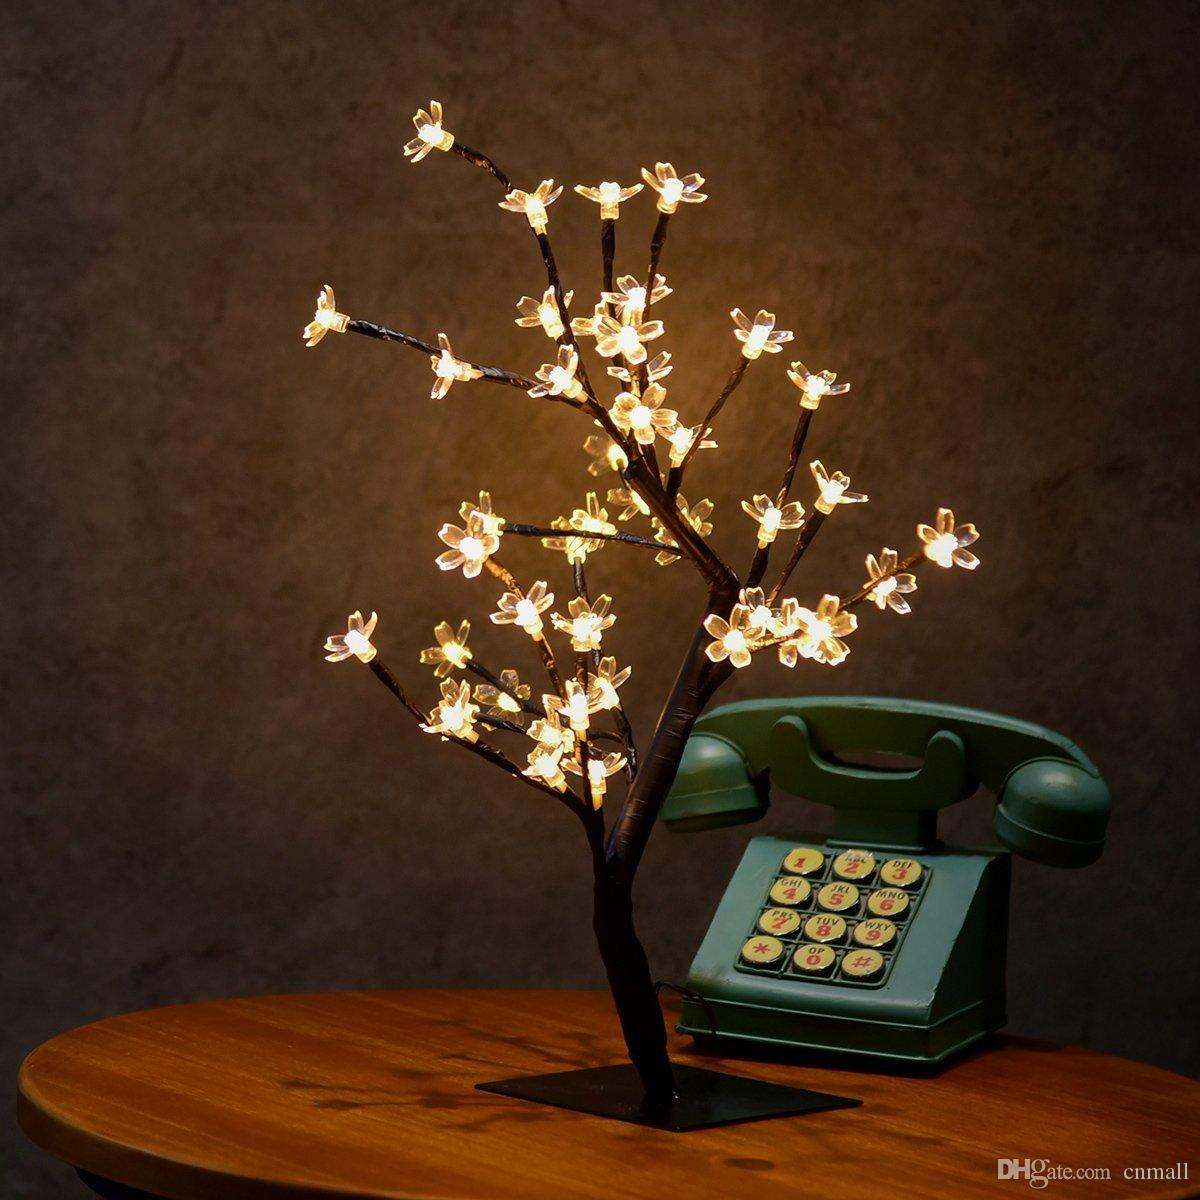 0.45M/17.72Inch 48LEDs Cherry Blossom Desk Top Bonsai Tree Light Black Branches for Home Party Wedding Christmas Indoor Outdoor Decoration